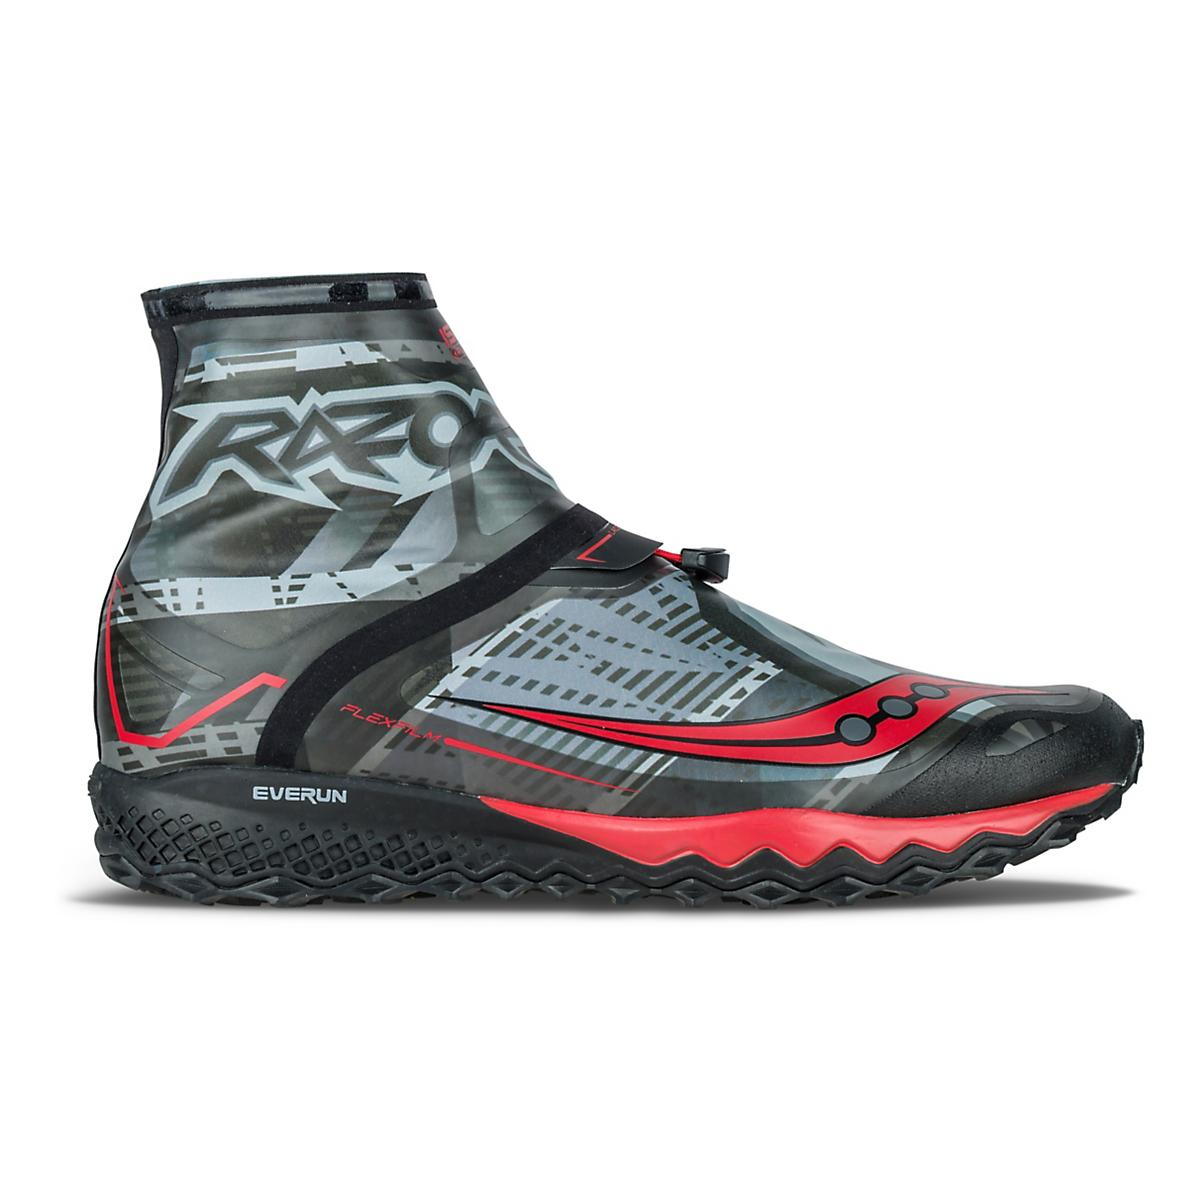 Mens Brooks Adrenaline GTS 16 Running Shoe at Road Runner Sports